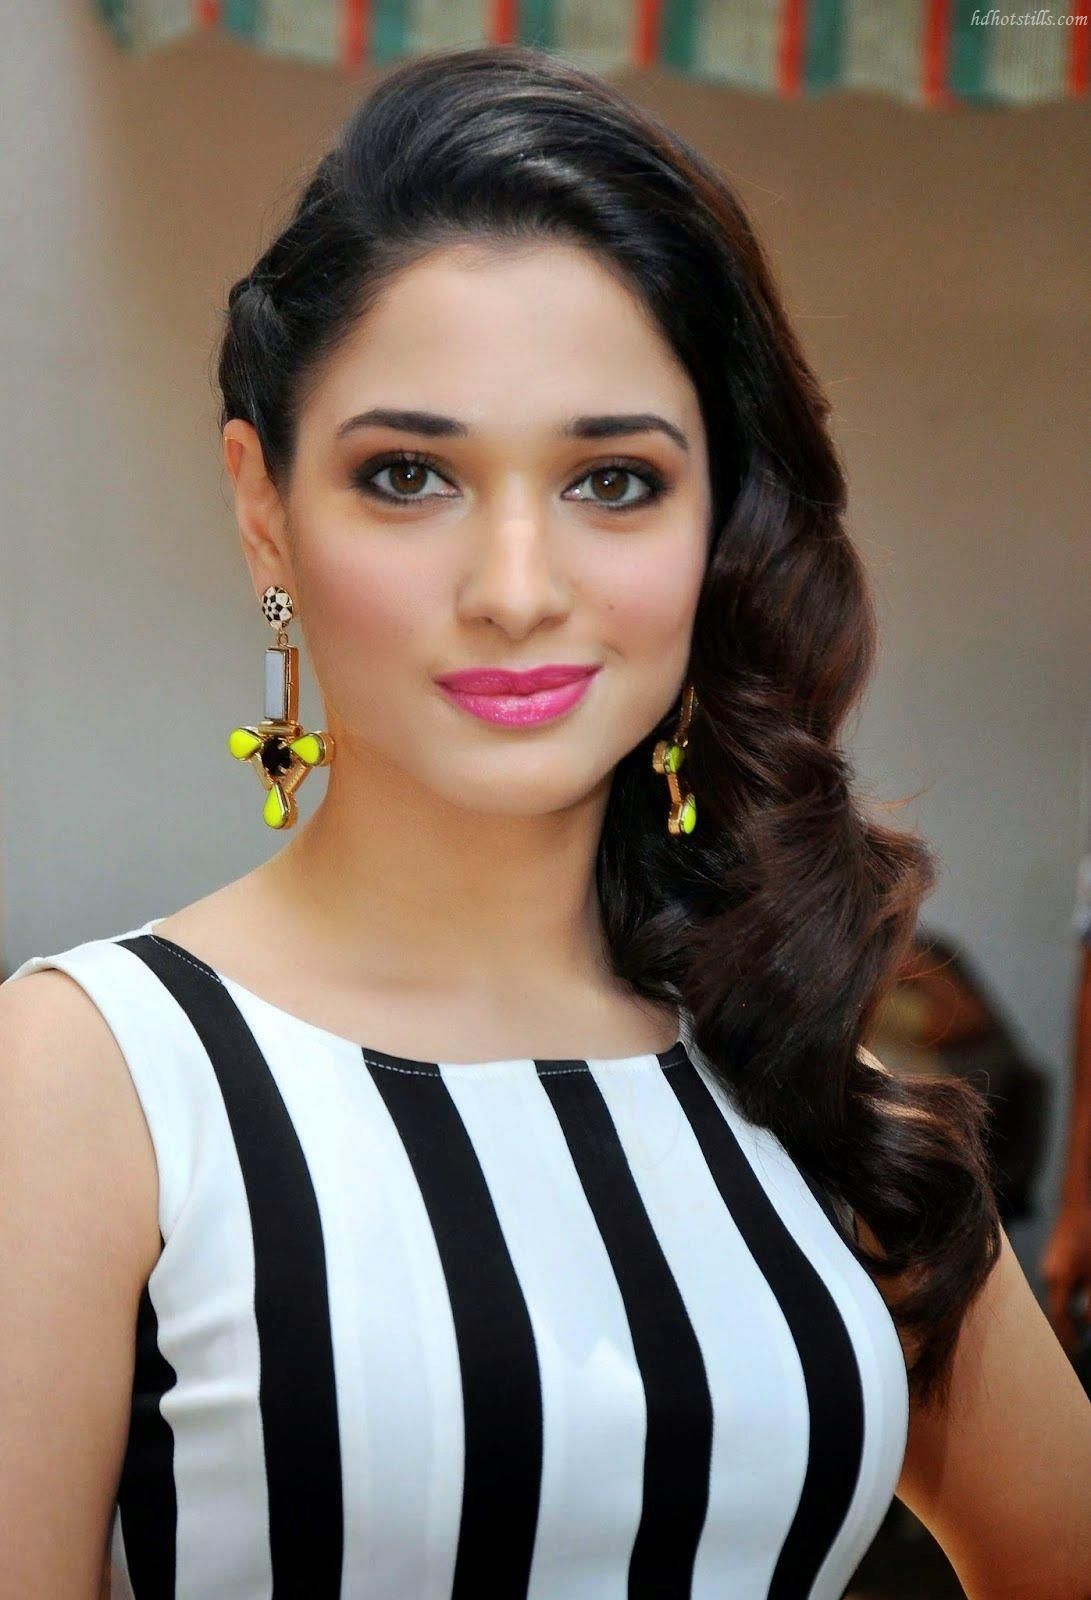 download tamanna bhatia in wavy side swept hairstyle wallpaper free